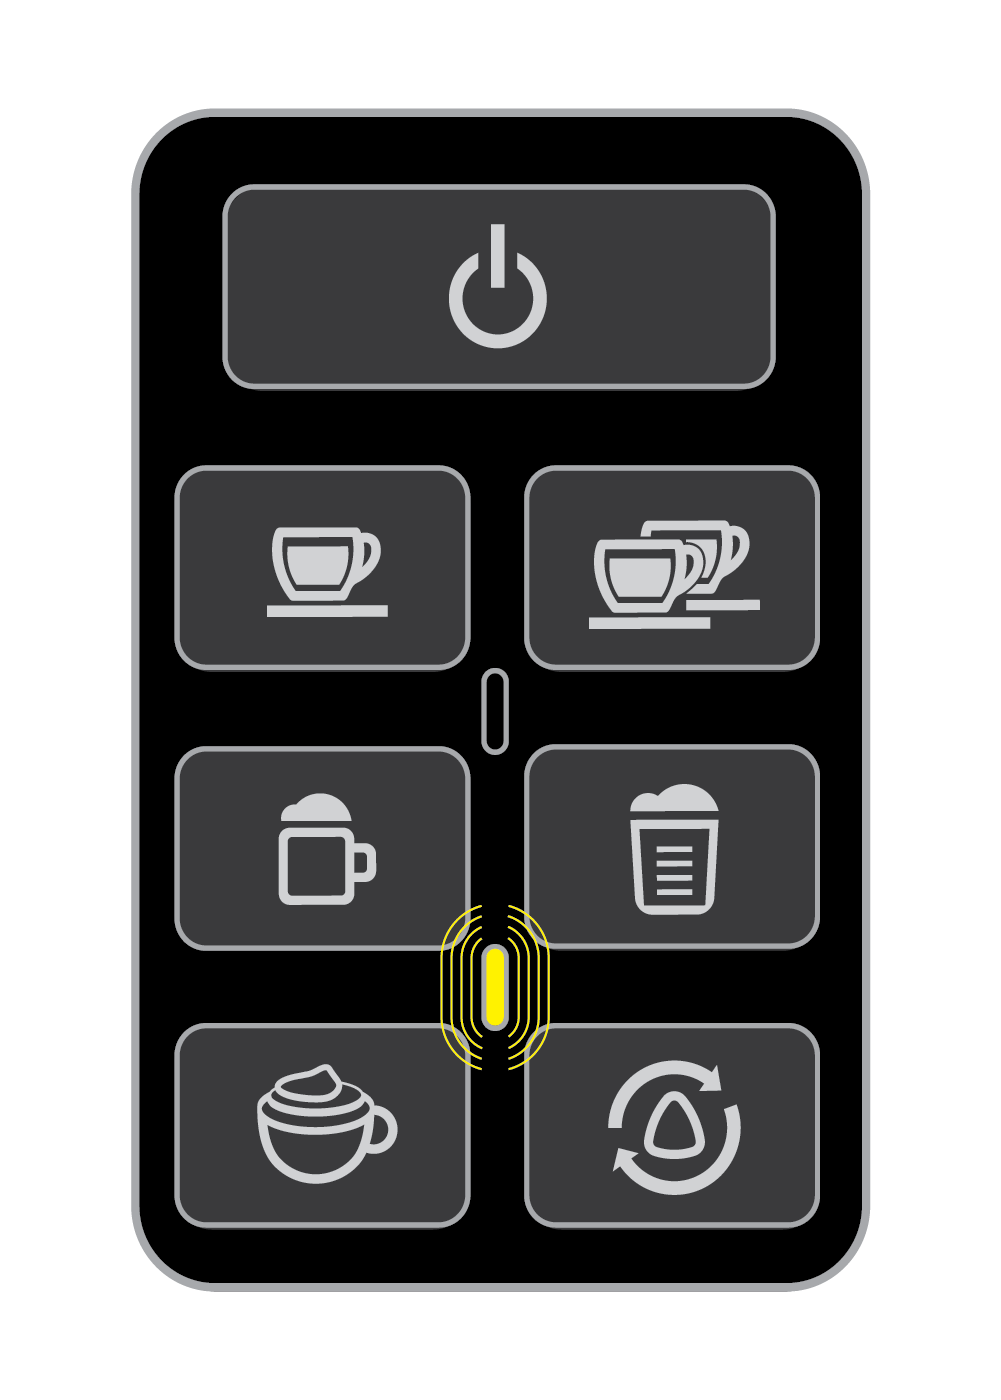 Yellow Indicator Light on the One-Touch Panel - EspressoWorks 19-bar Espresso & Cappuccino Maker